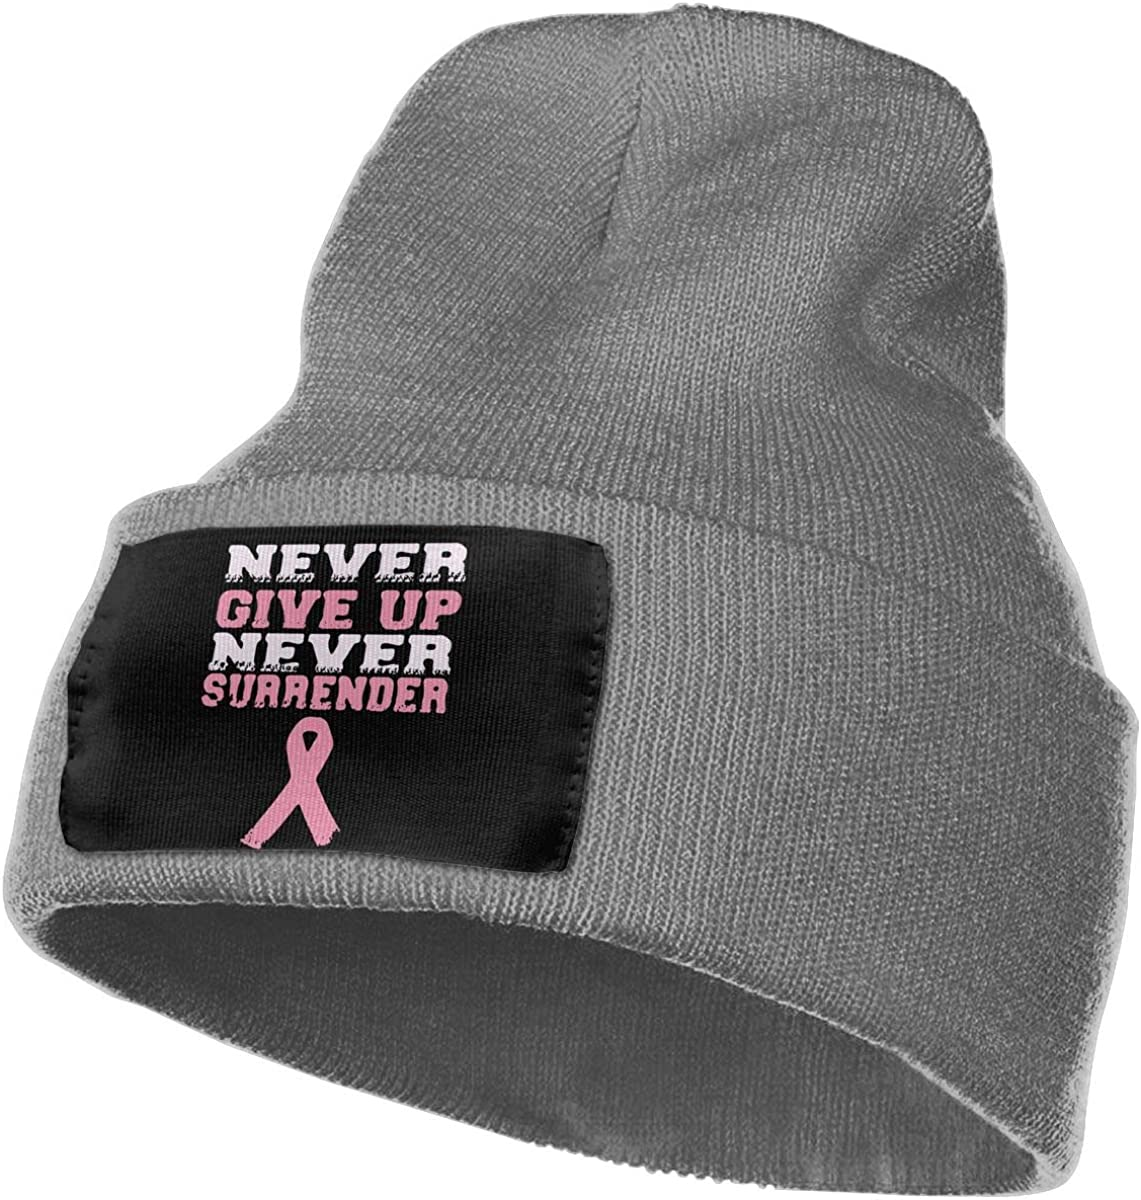 Breast Cancer Awareness Thick Skull Beanie WHOO93@Y Mens and Womens 100/% Acrylic Knitted Hat Cap